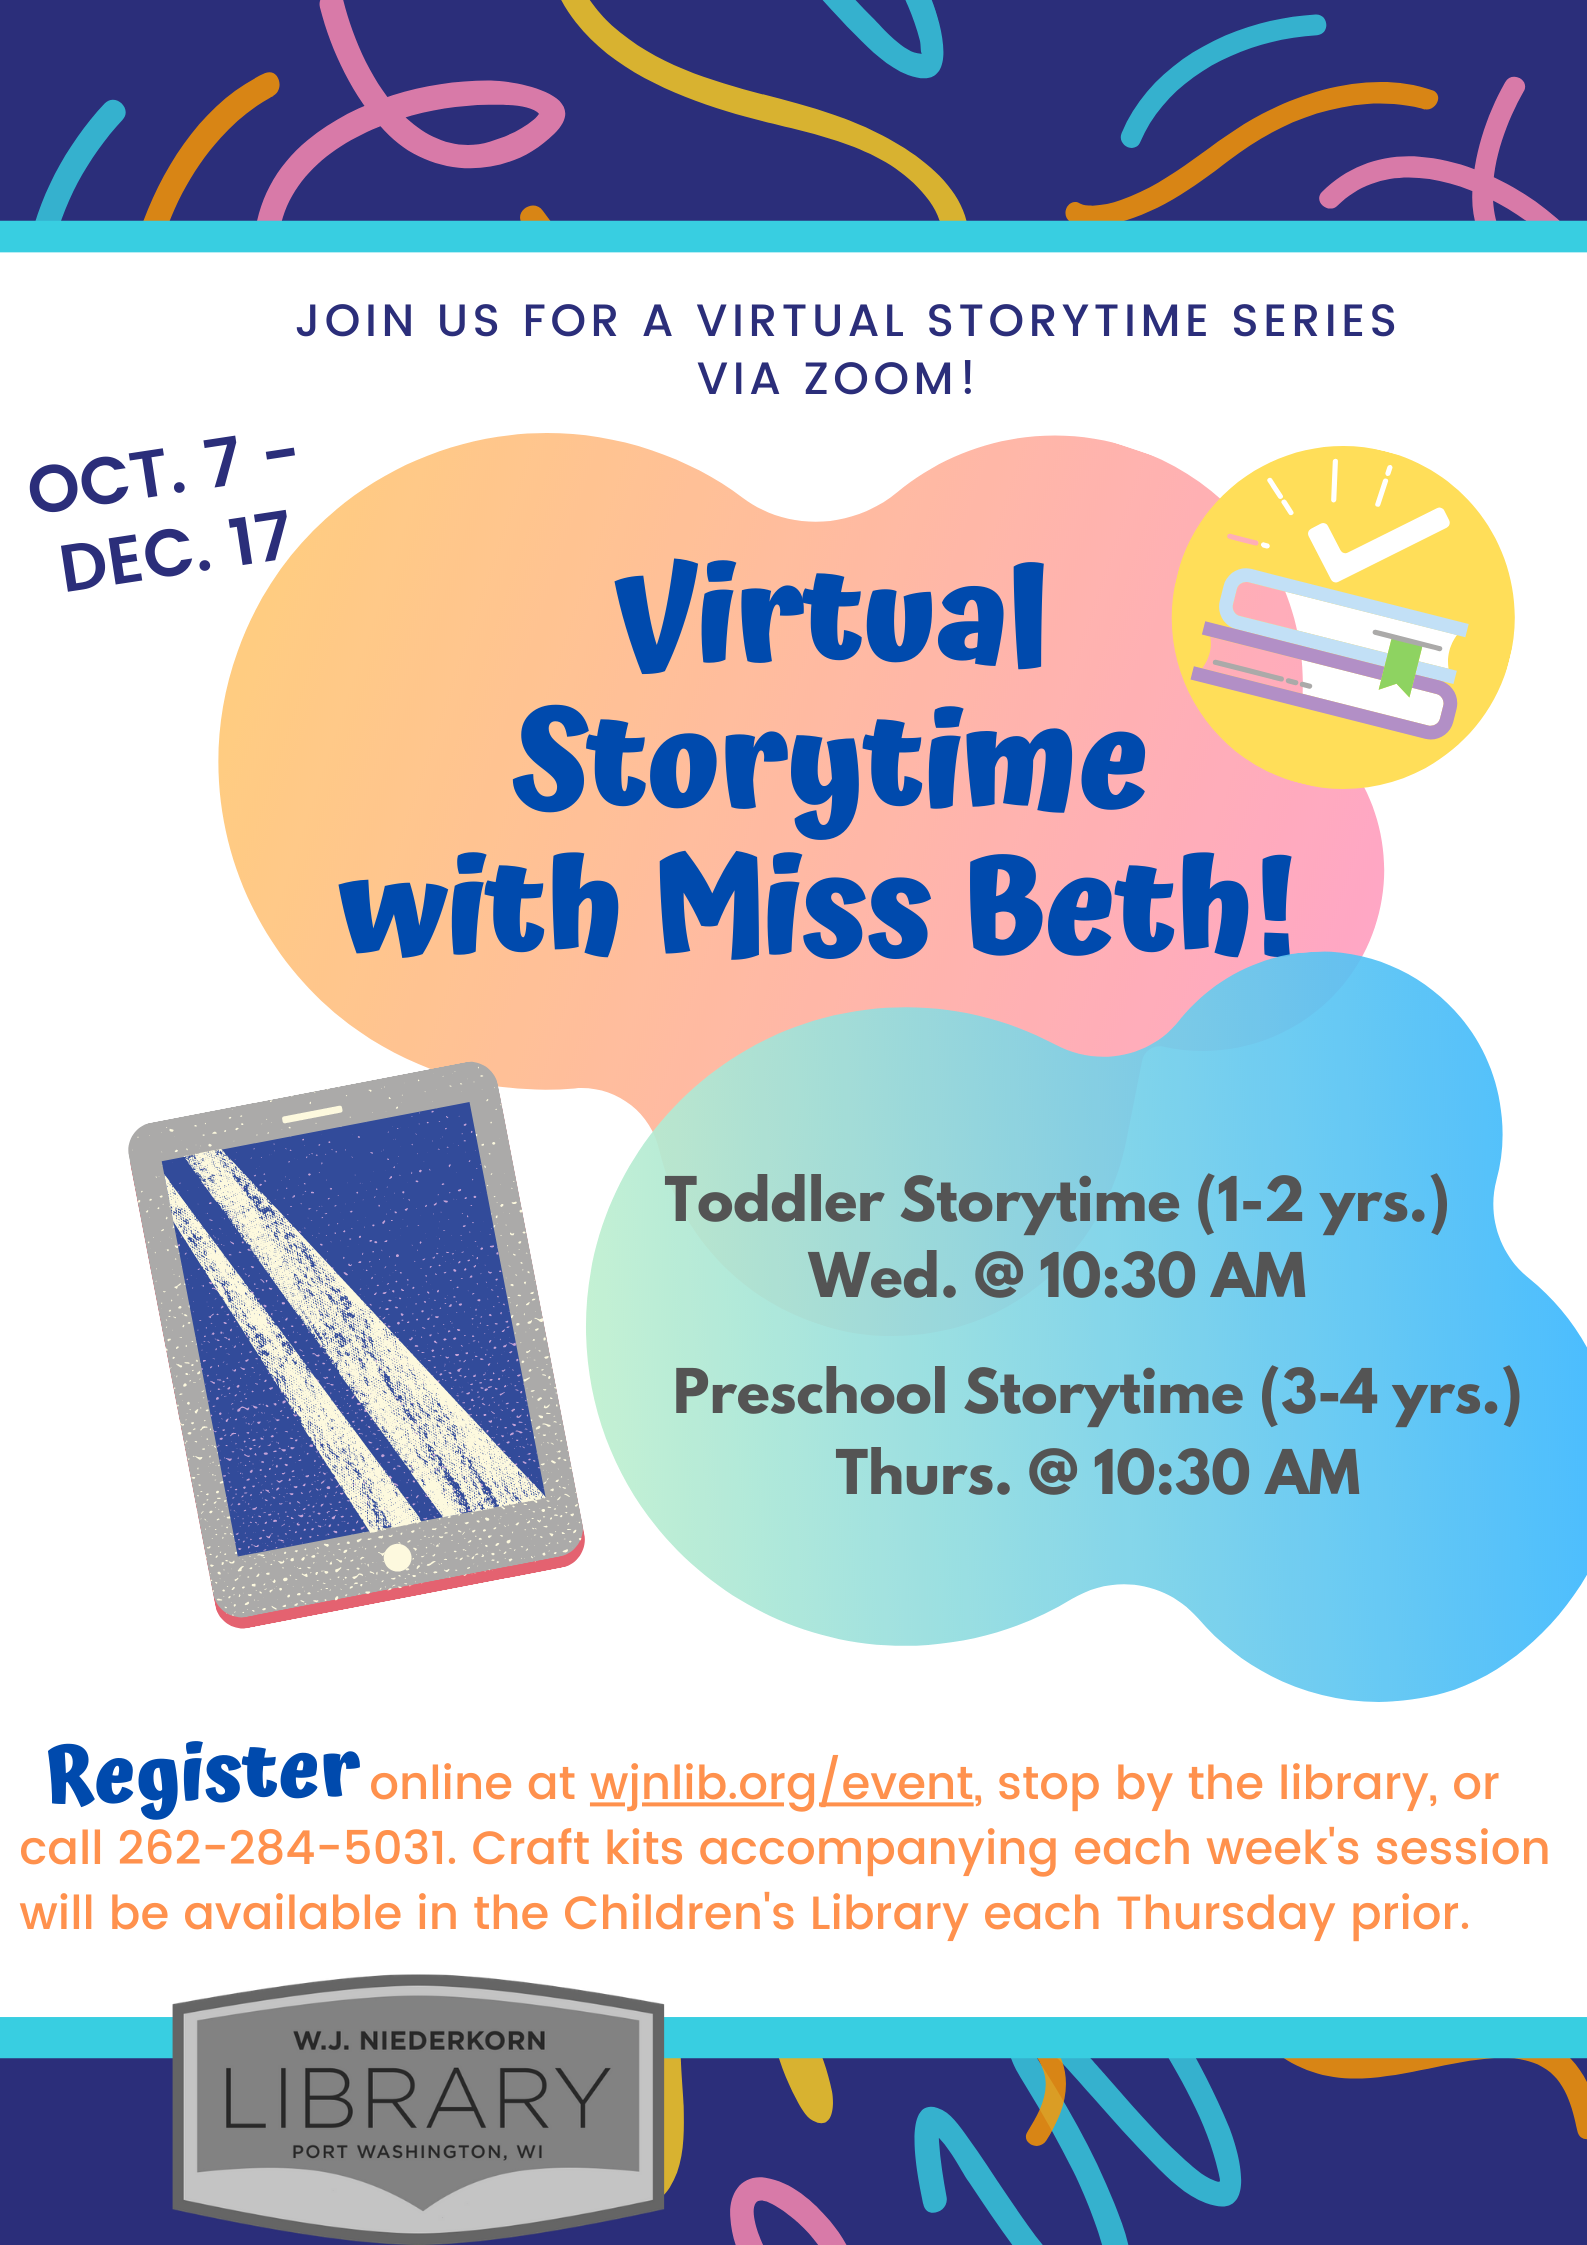 Poster about virtual storytime series with Miss Beth